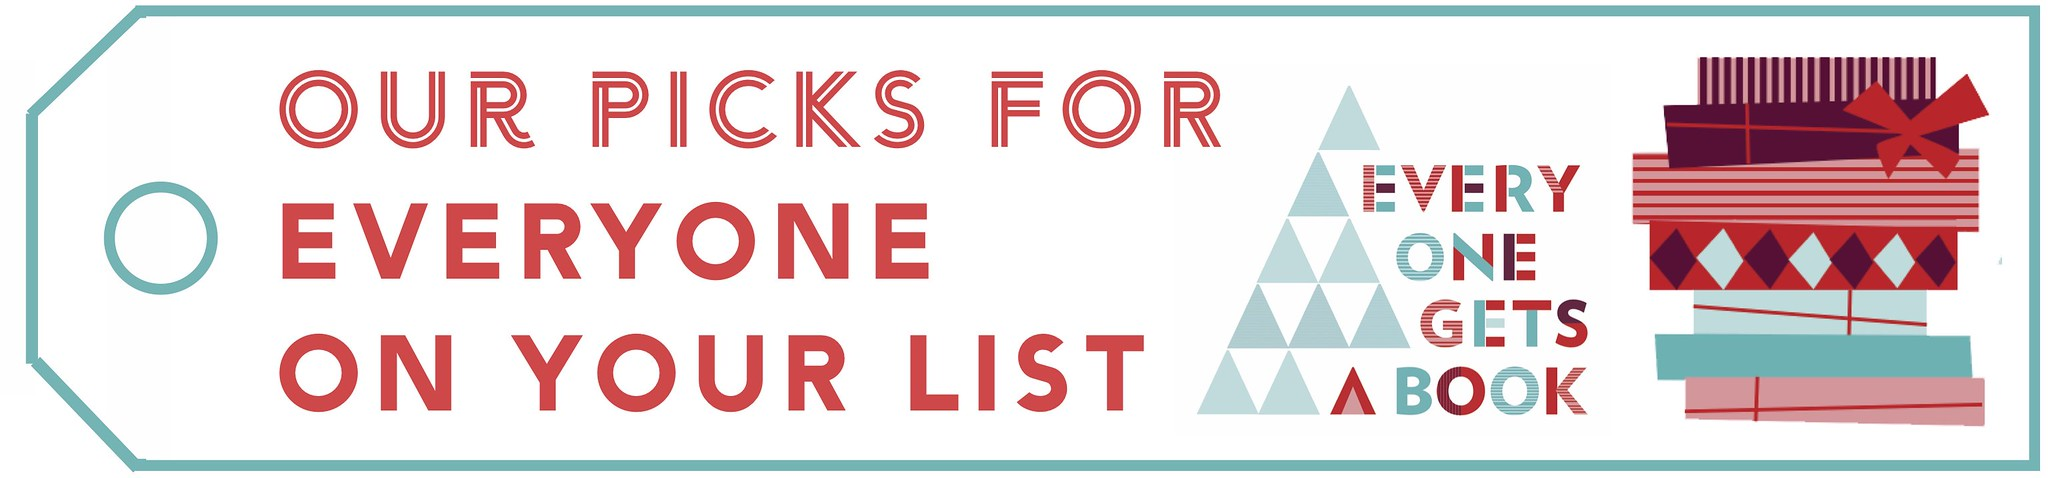 We've picked something out for everyone on your list!